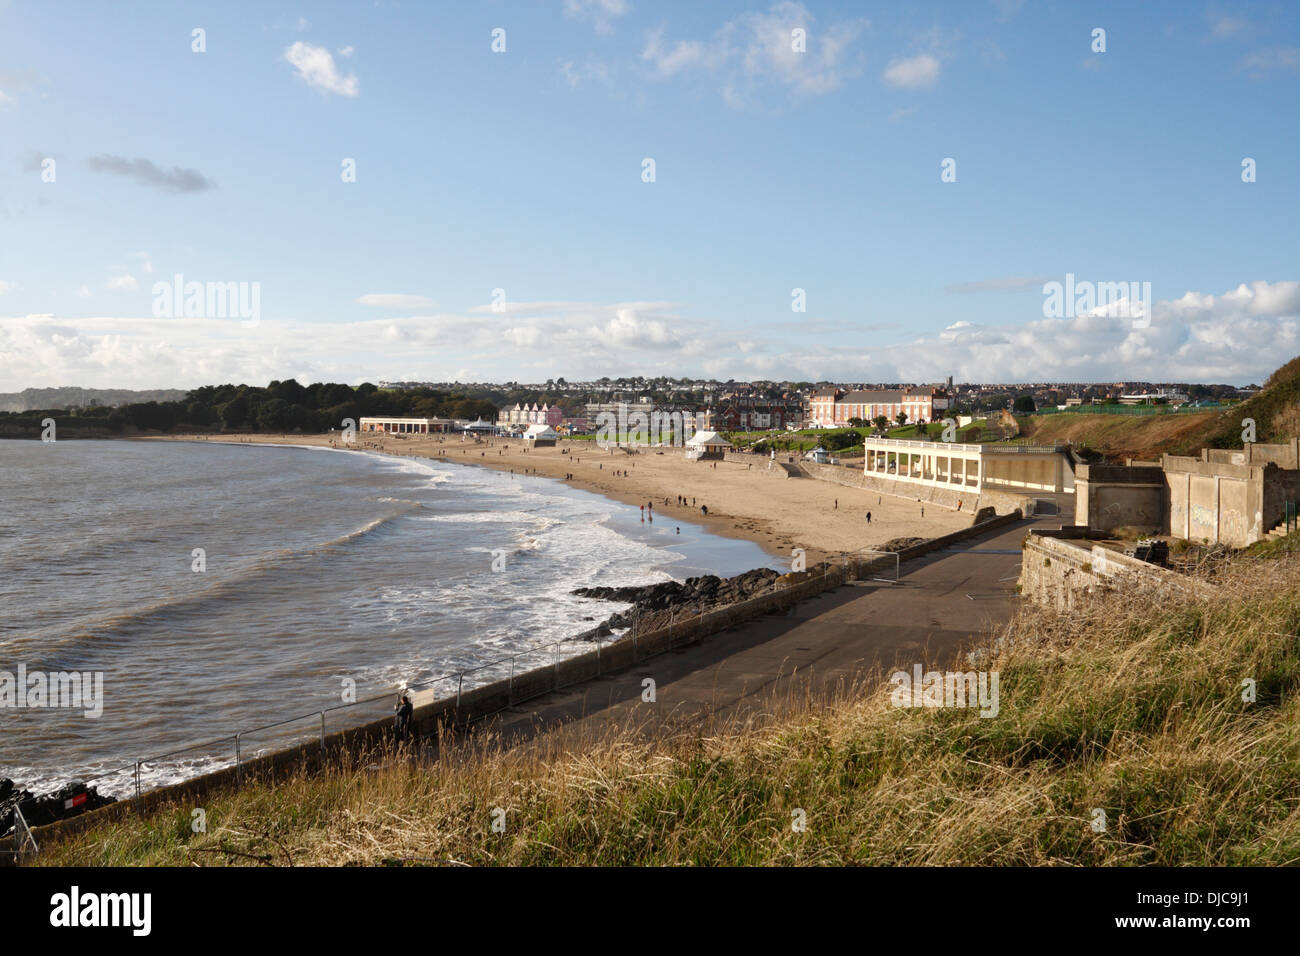 Whitmore Bay and Beach in Barry Island, Wales, welsh coast Stock Photo